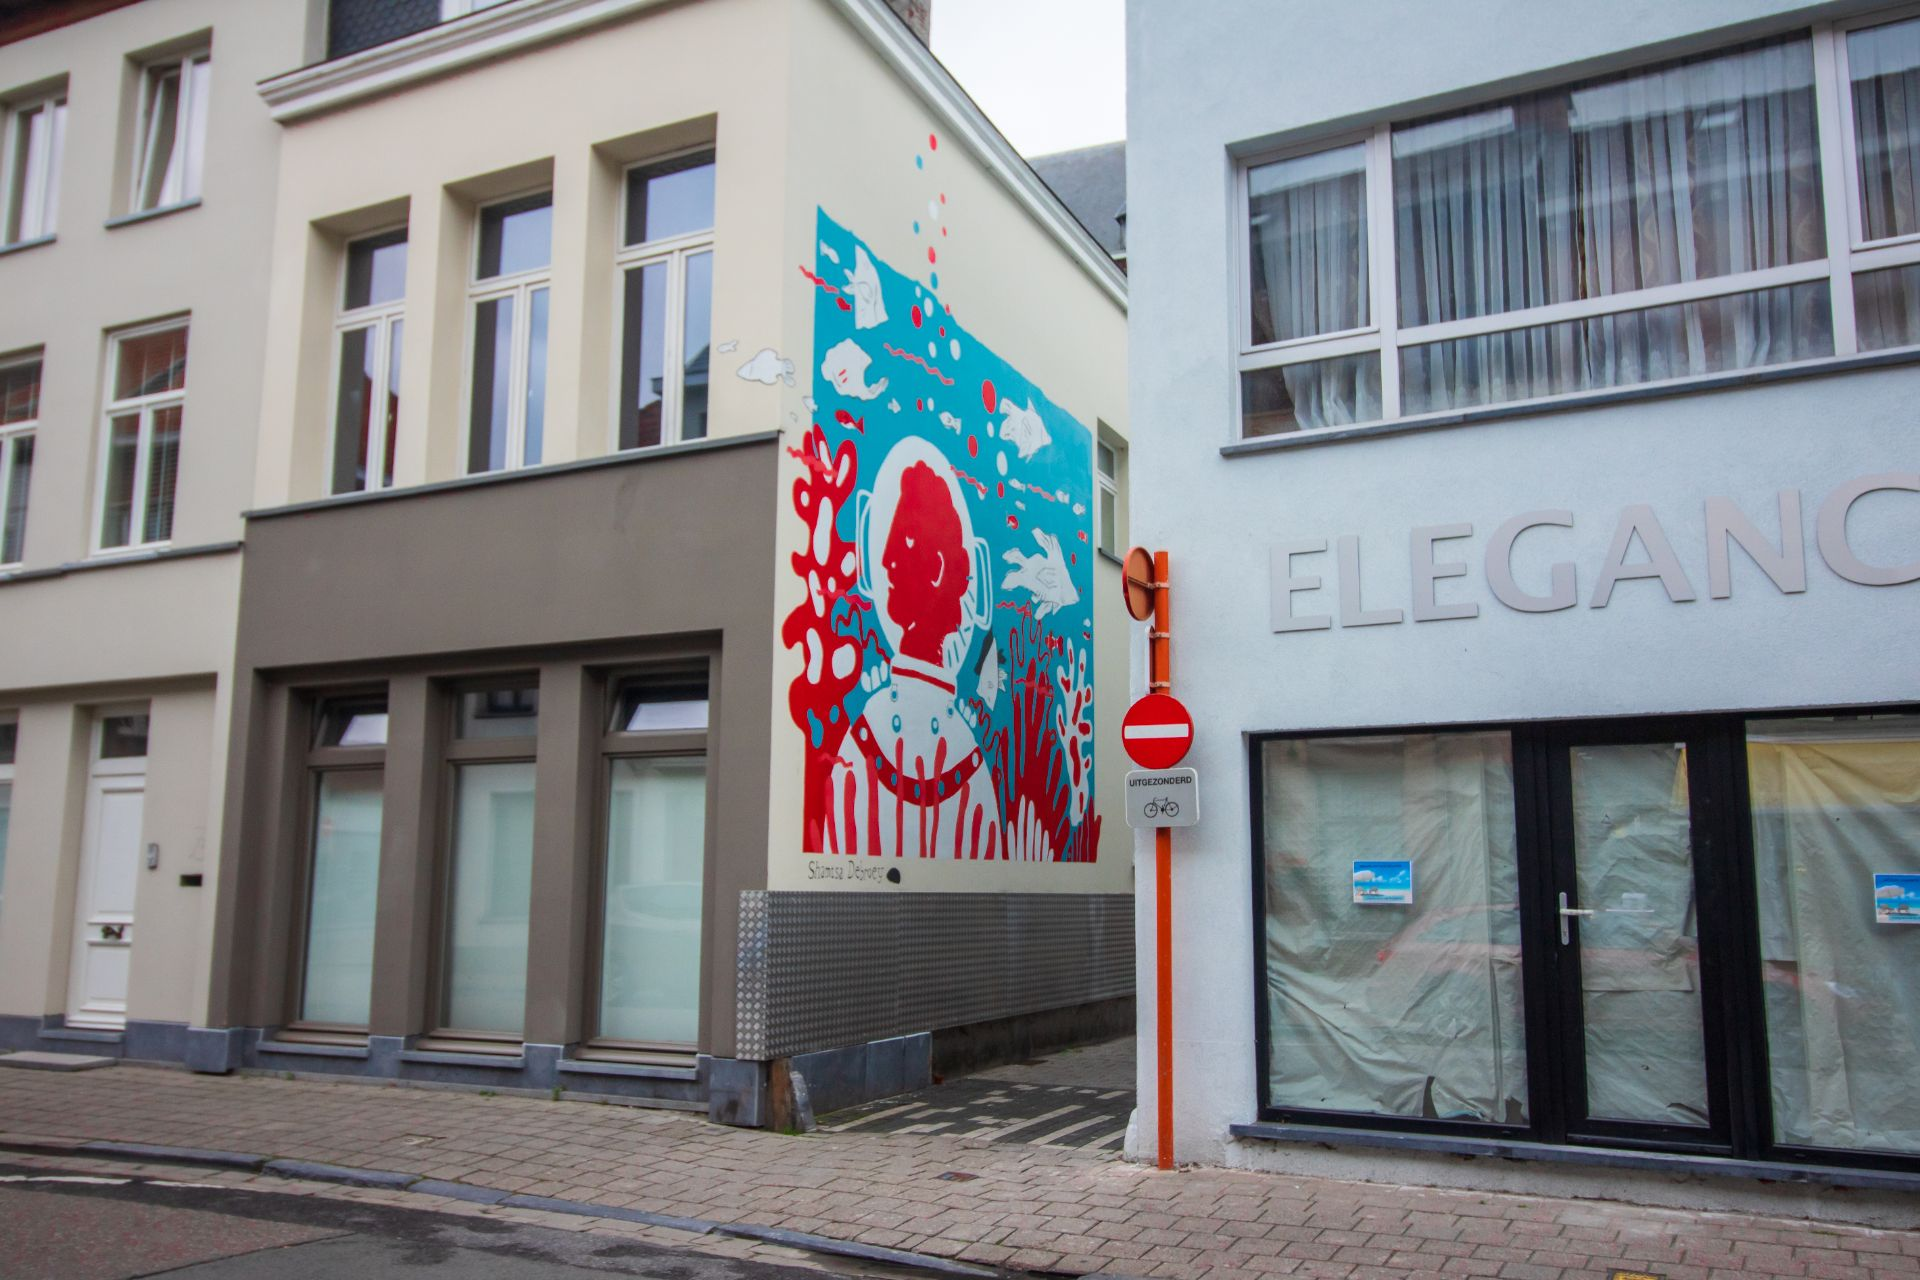 red-and-blue-underwater-graffiti-down-small-alleyway-mechelen-muurt-belgium